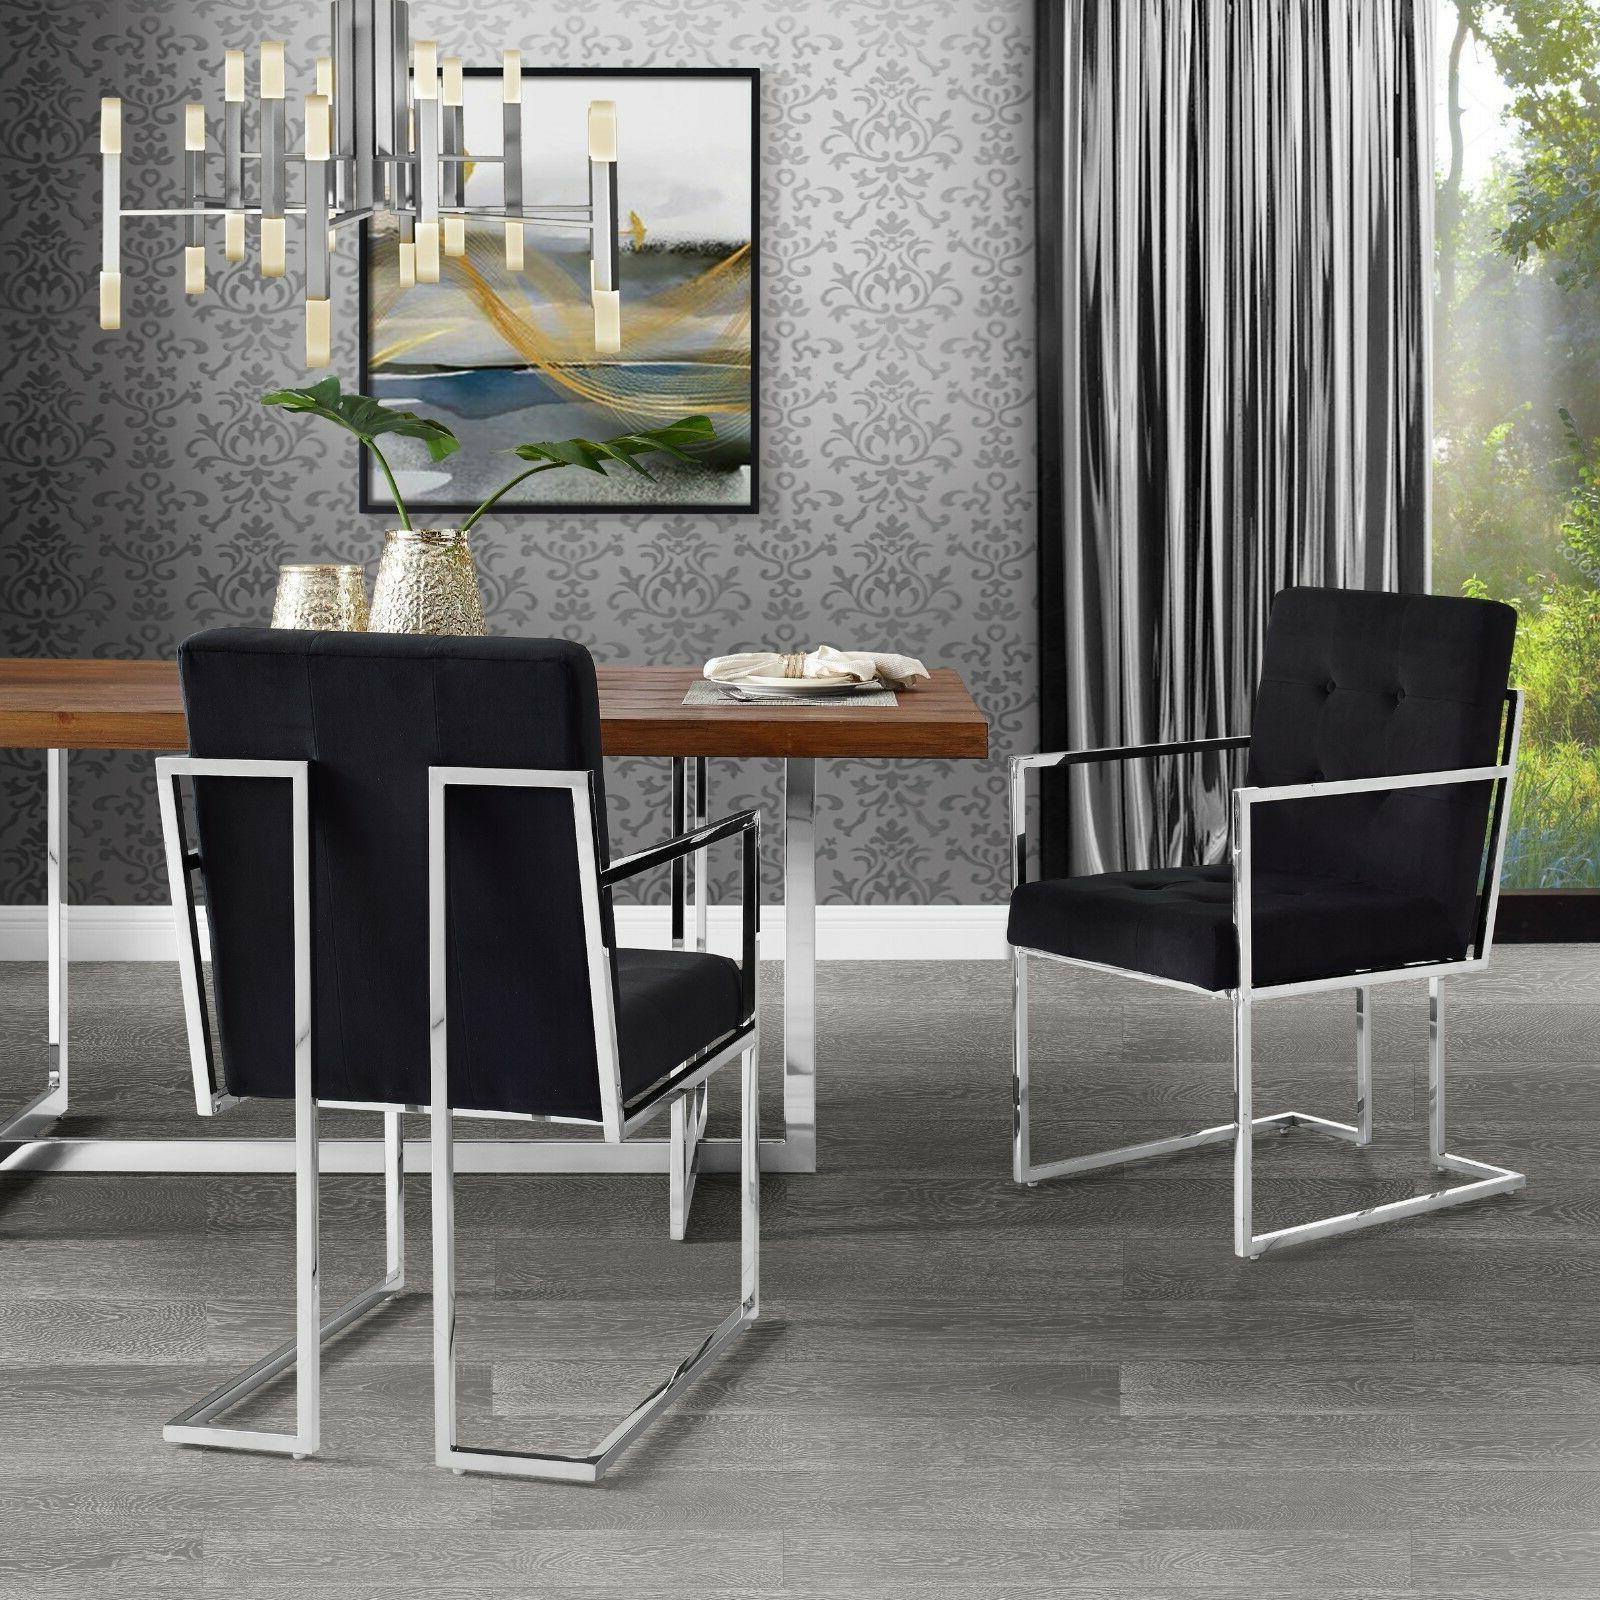 Square Dining Chair Set of 2 PU Leather